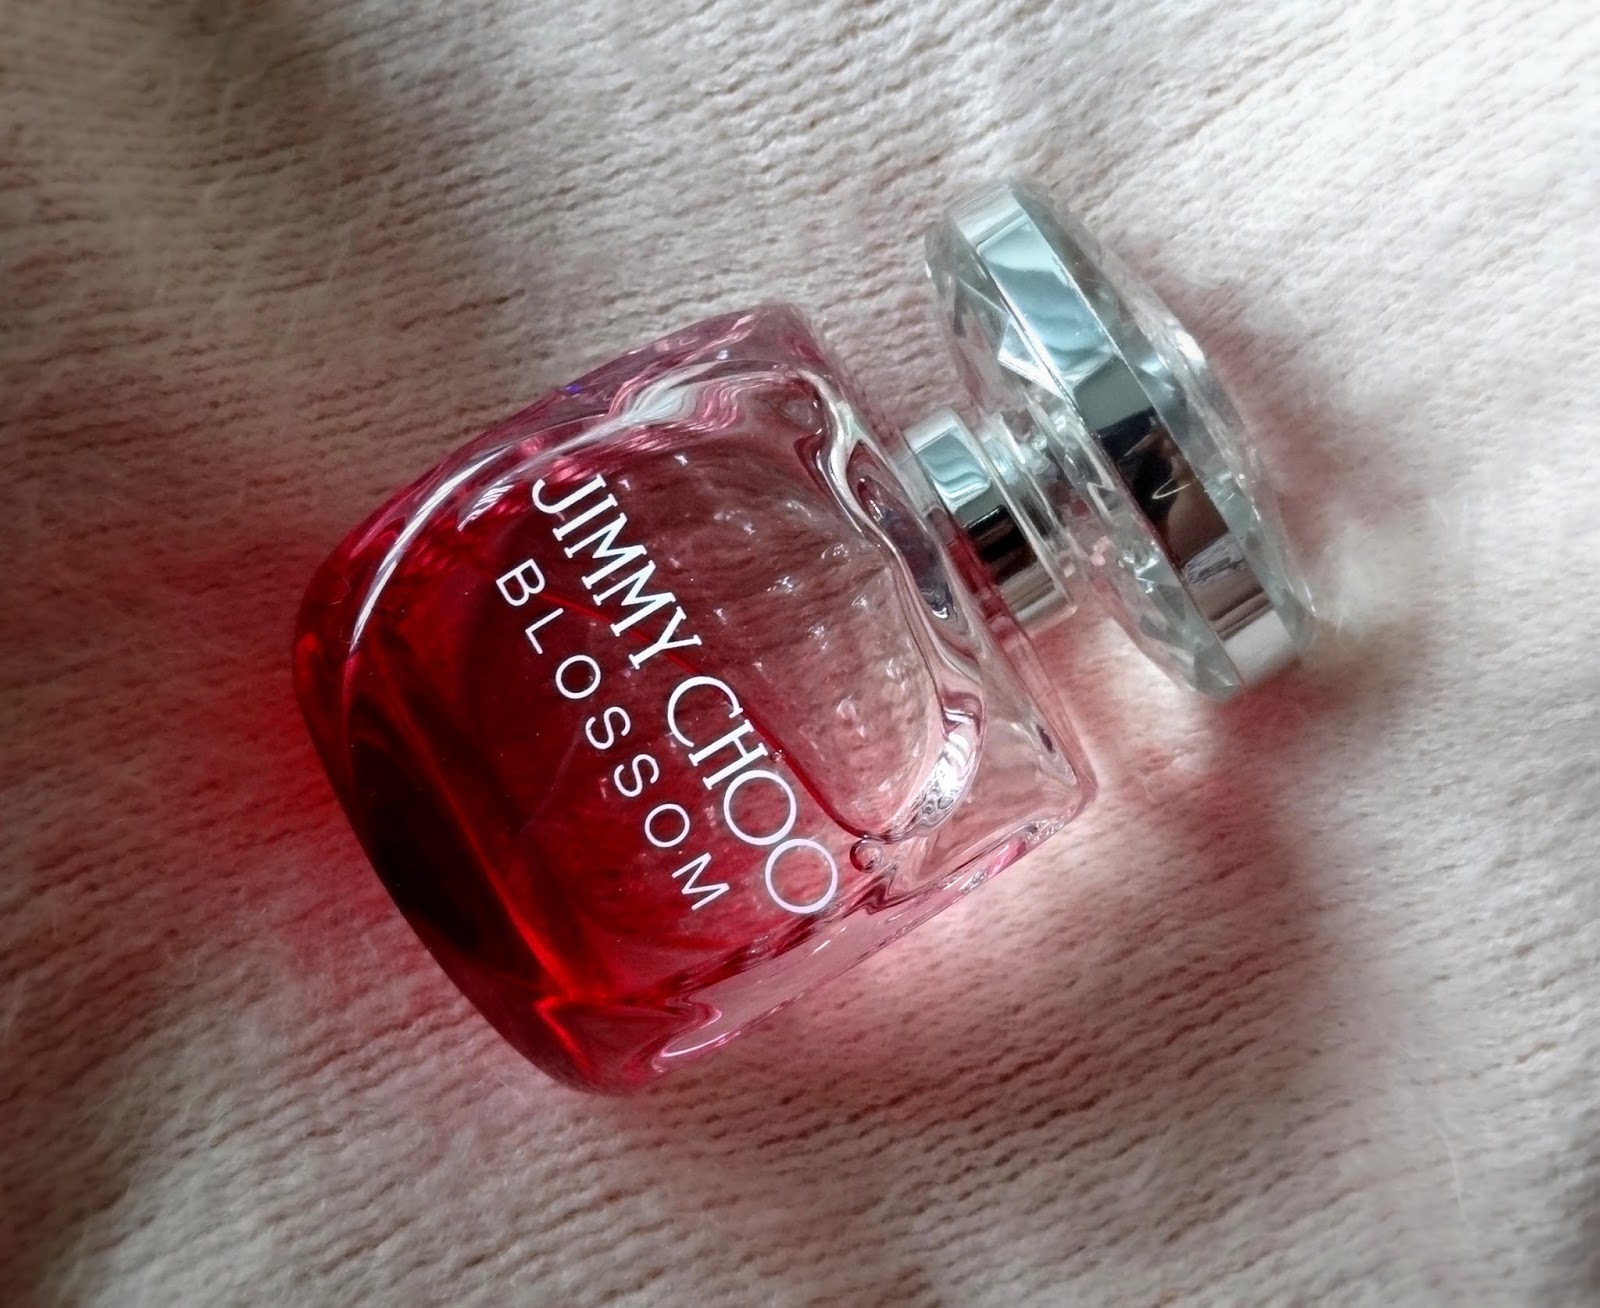 Jimmy Choo Blossom Spring 2015 Eau de Parfum Review, Photos